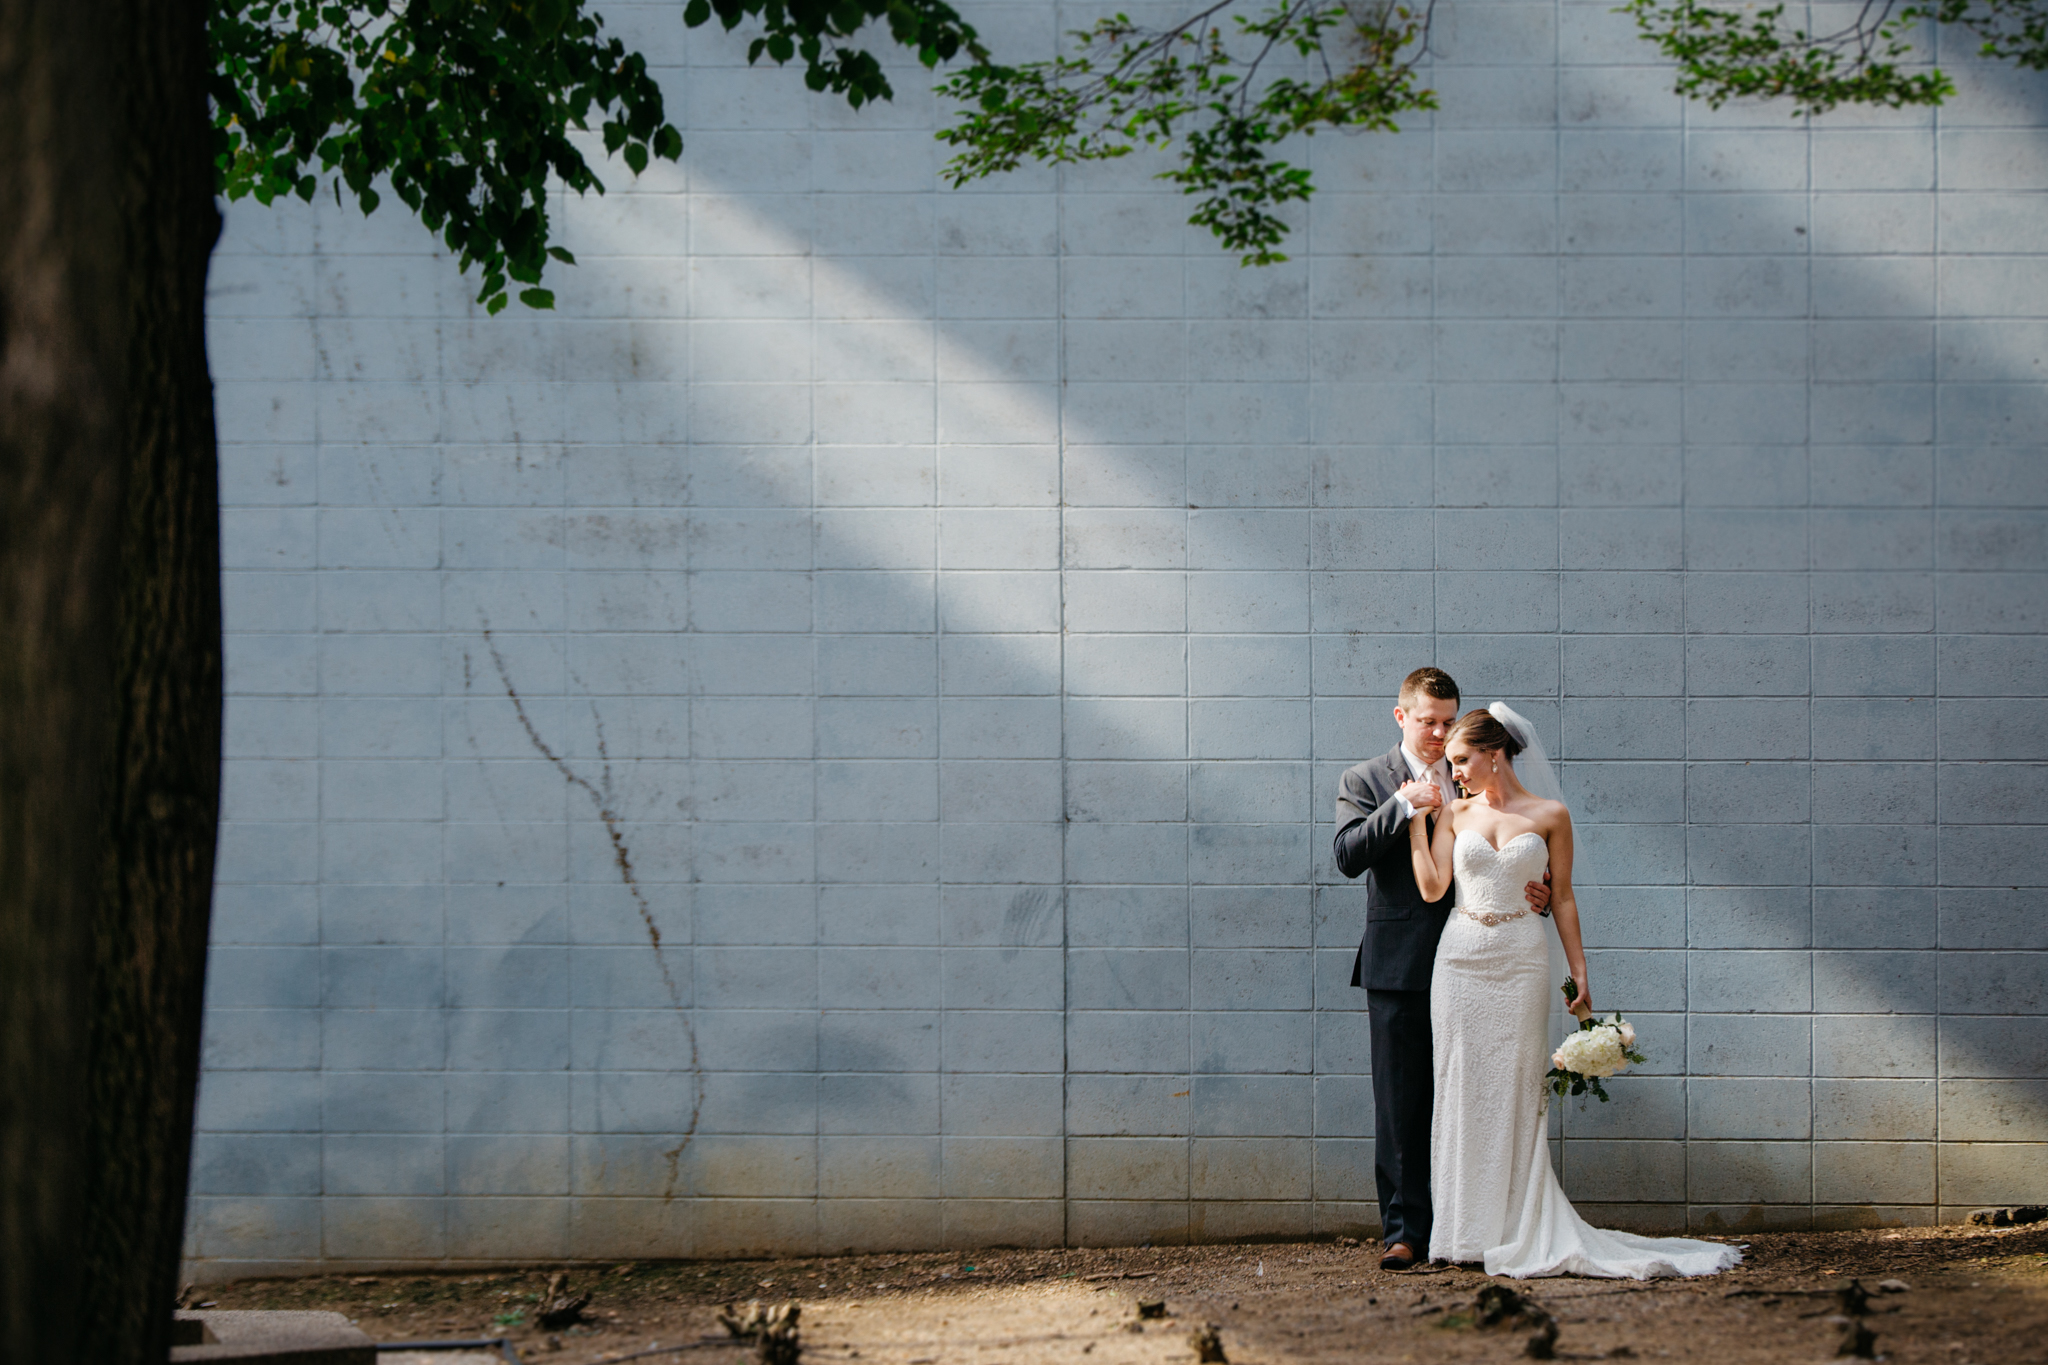 """""""Wedding Couple"""" Category,4461st place out of 36,983 images"""